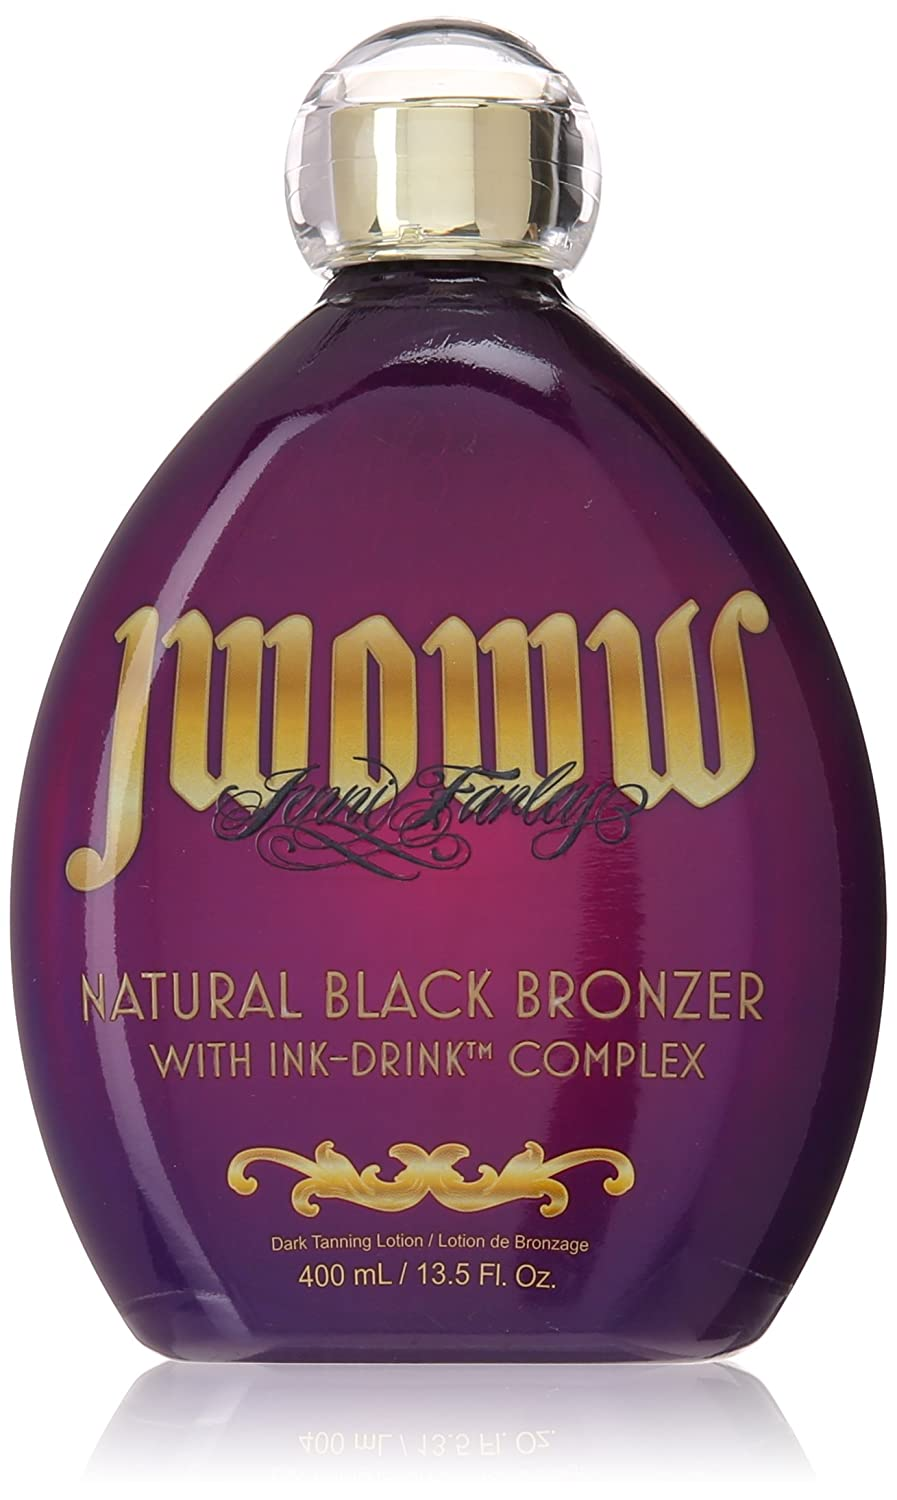 Homemade Tanning Lotion Bronzer